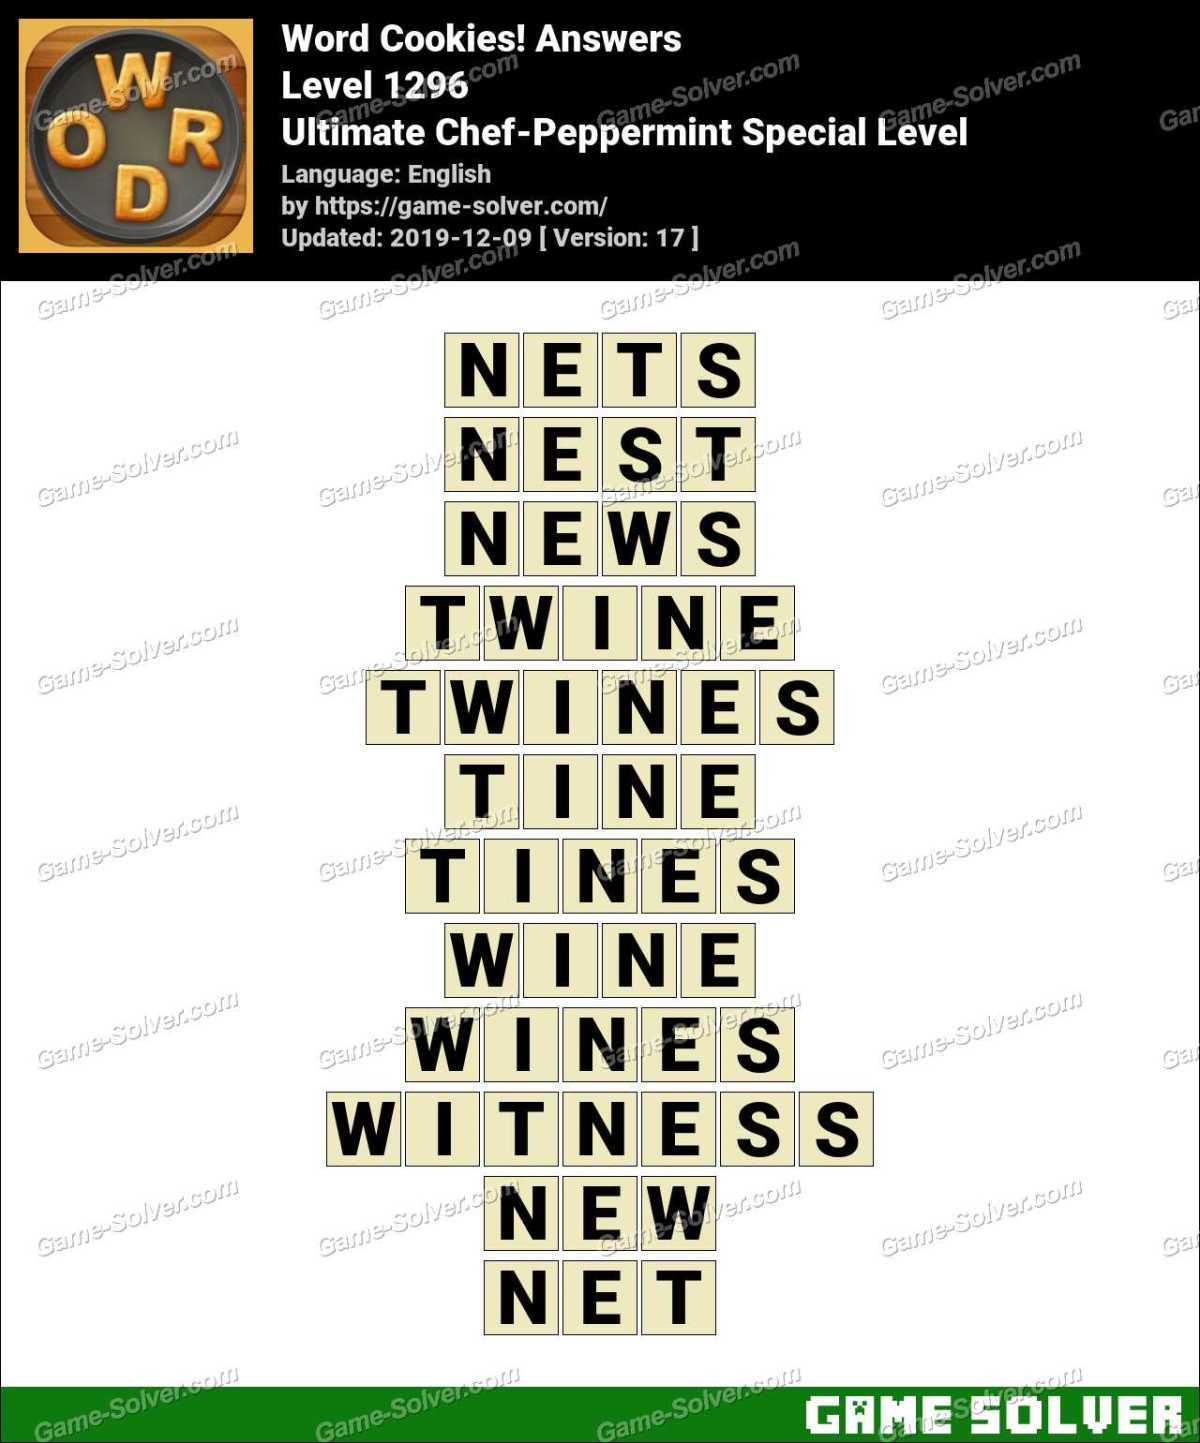 Word Cookies Ultimate Chef-Peppermint Special Level Answers